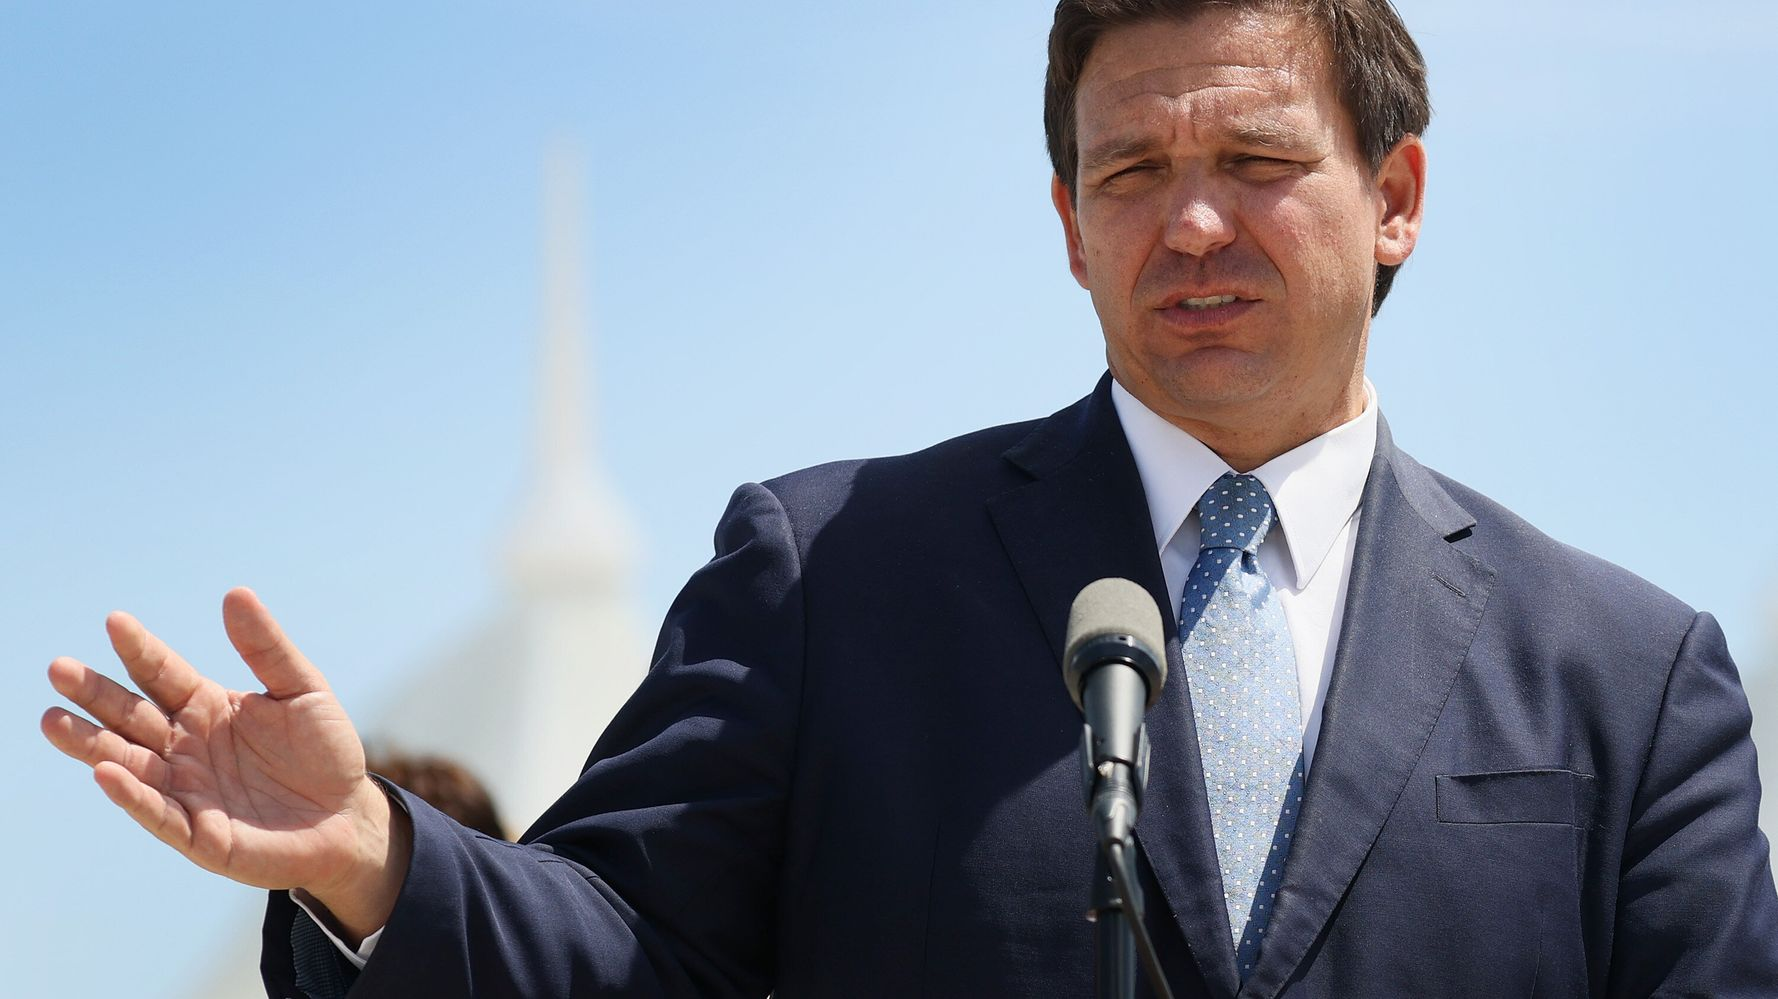 DeSantis Vaccine Slogan Is 'Seniors First' – But 'Rich, White Seniors First' Is What Happened